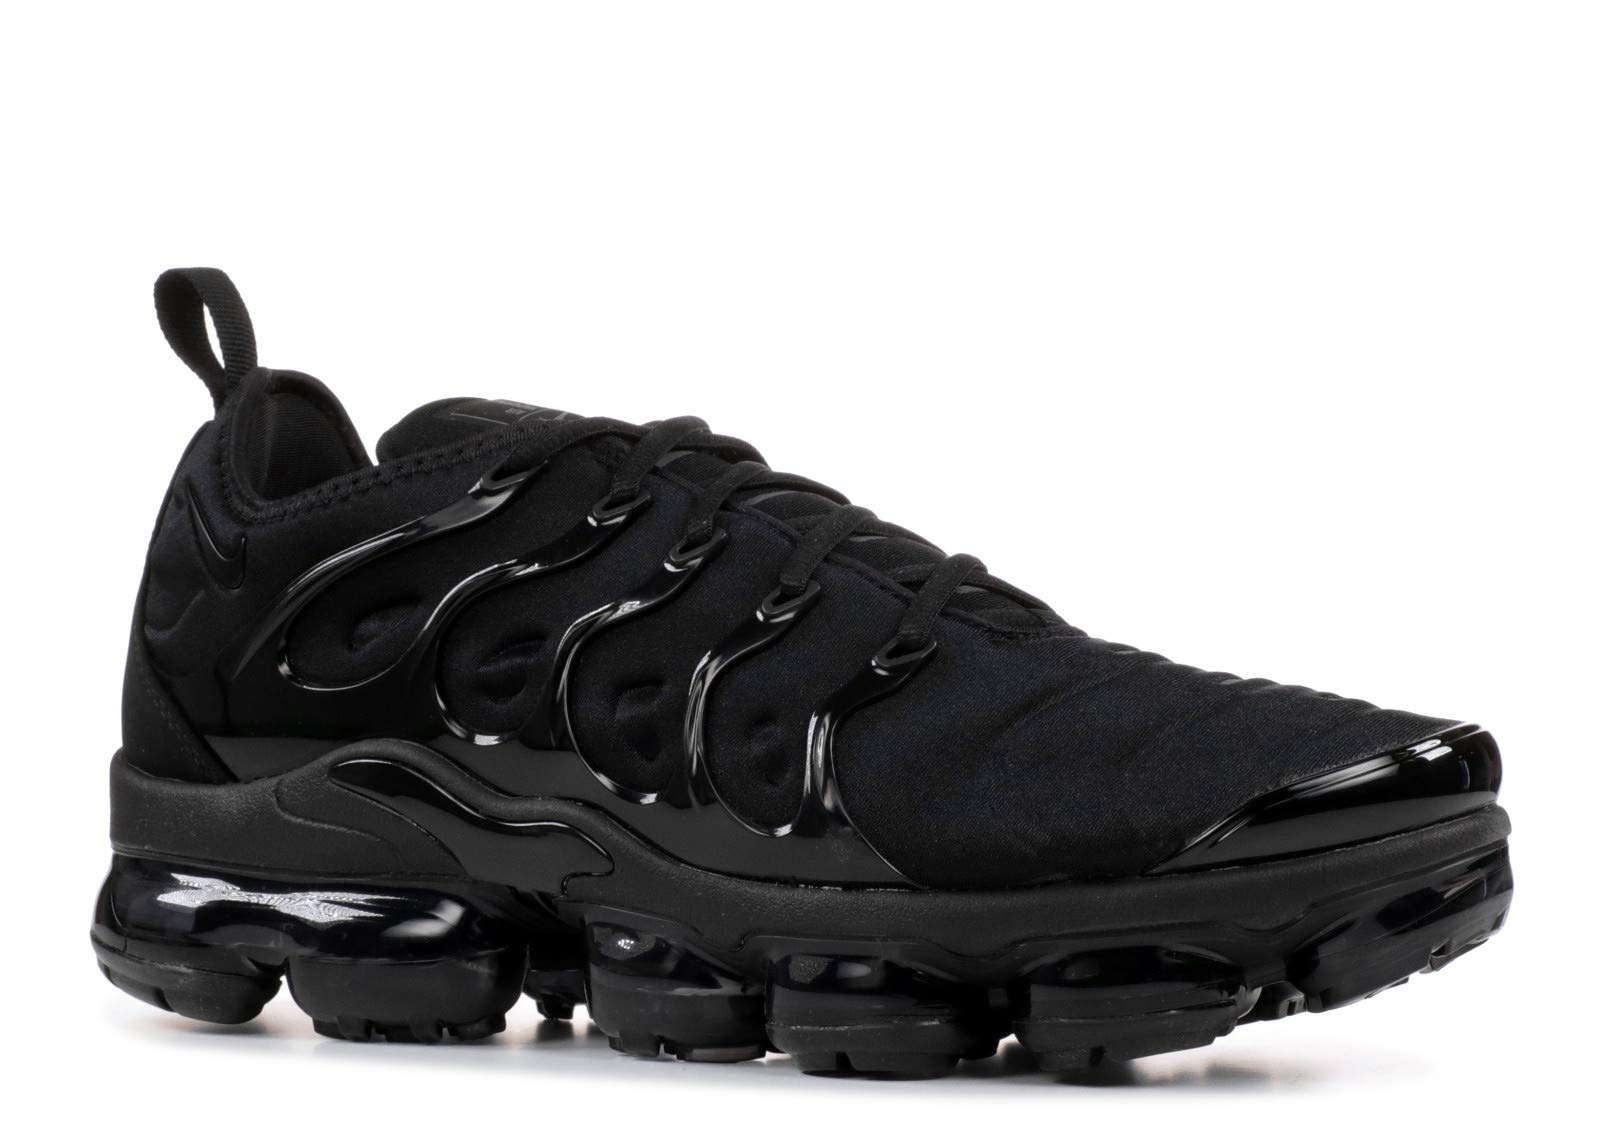 85e5cb42e70 Galleon - NIKE Men s Air Vapormax Plus